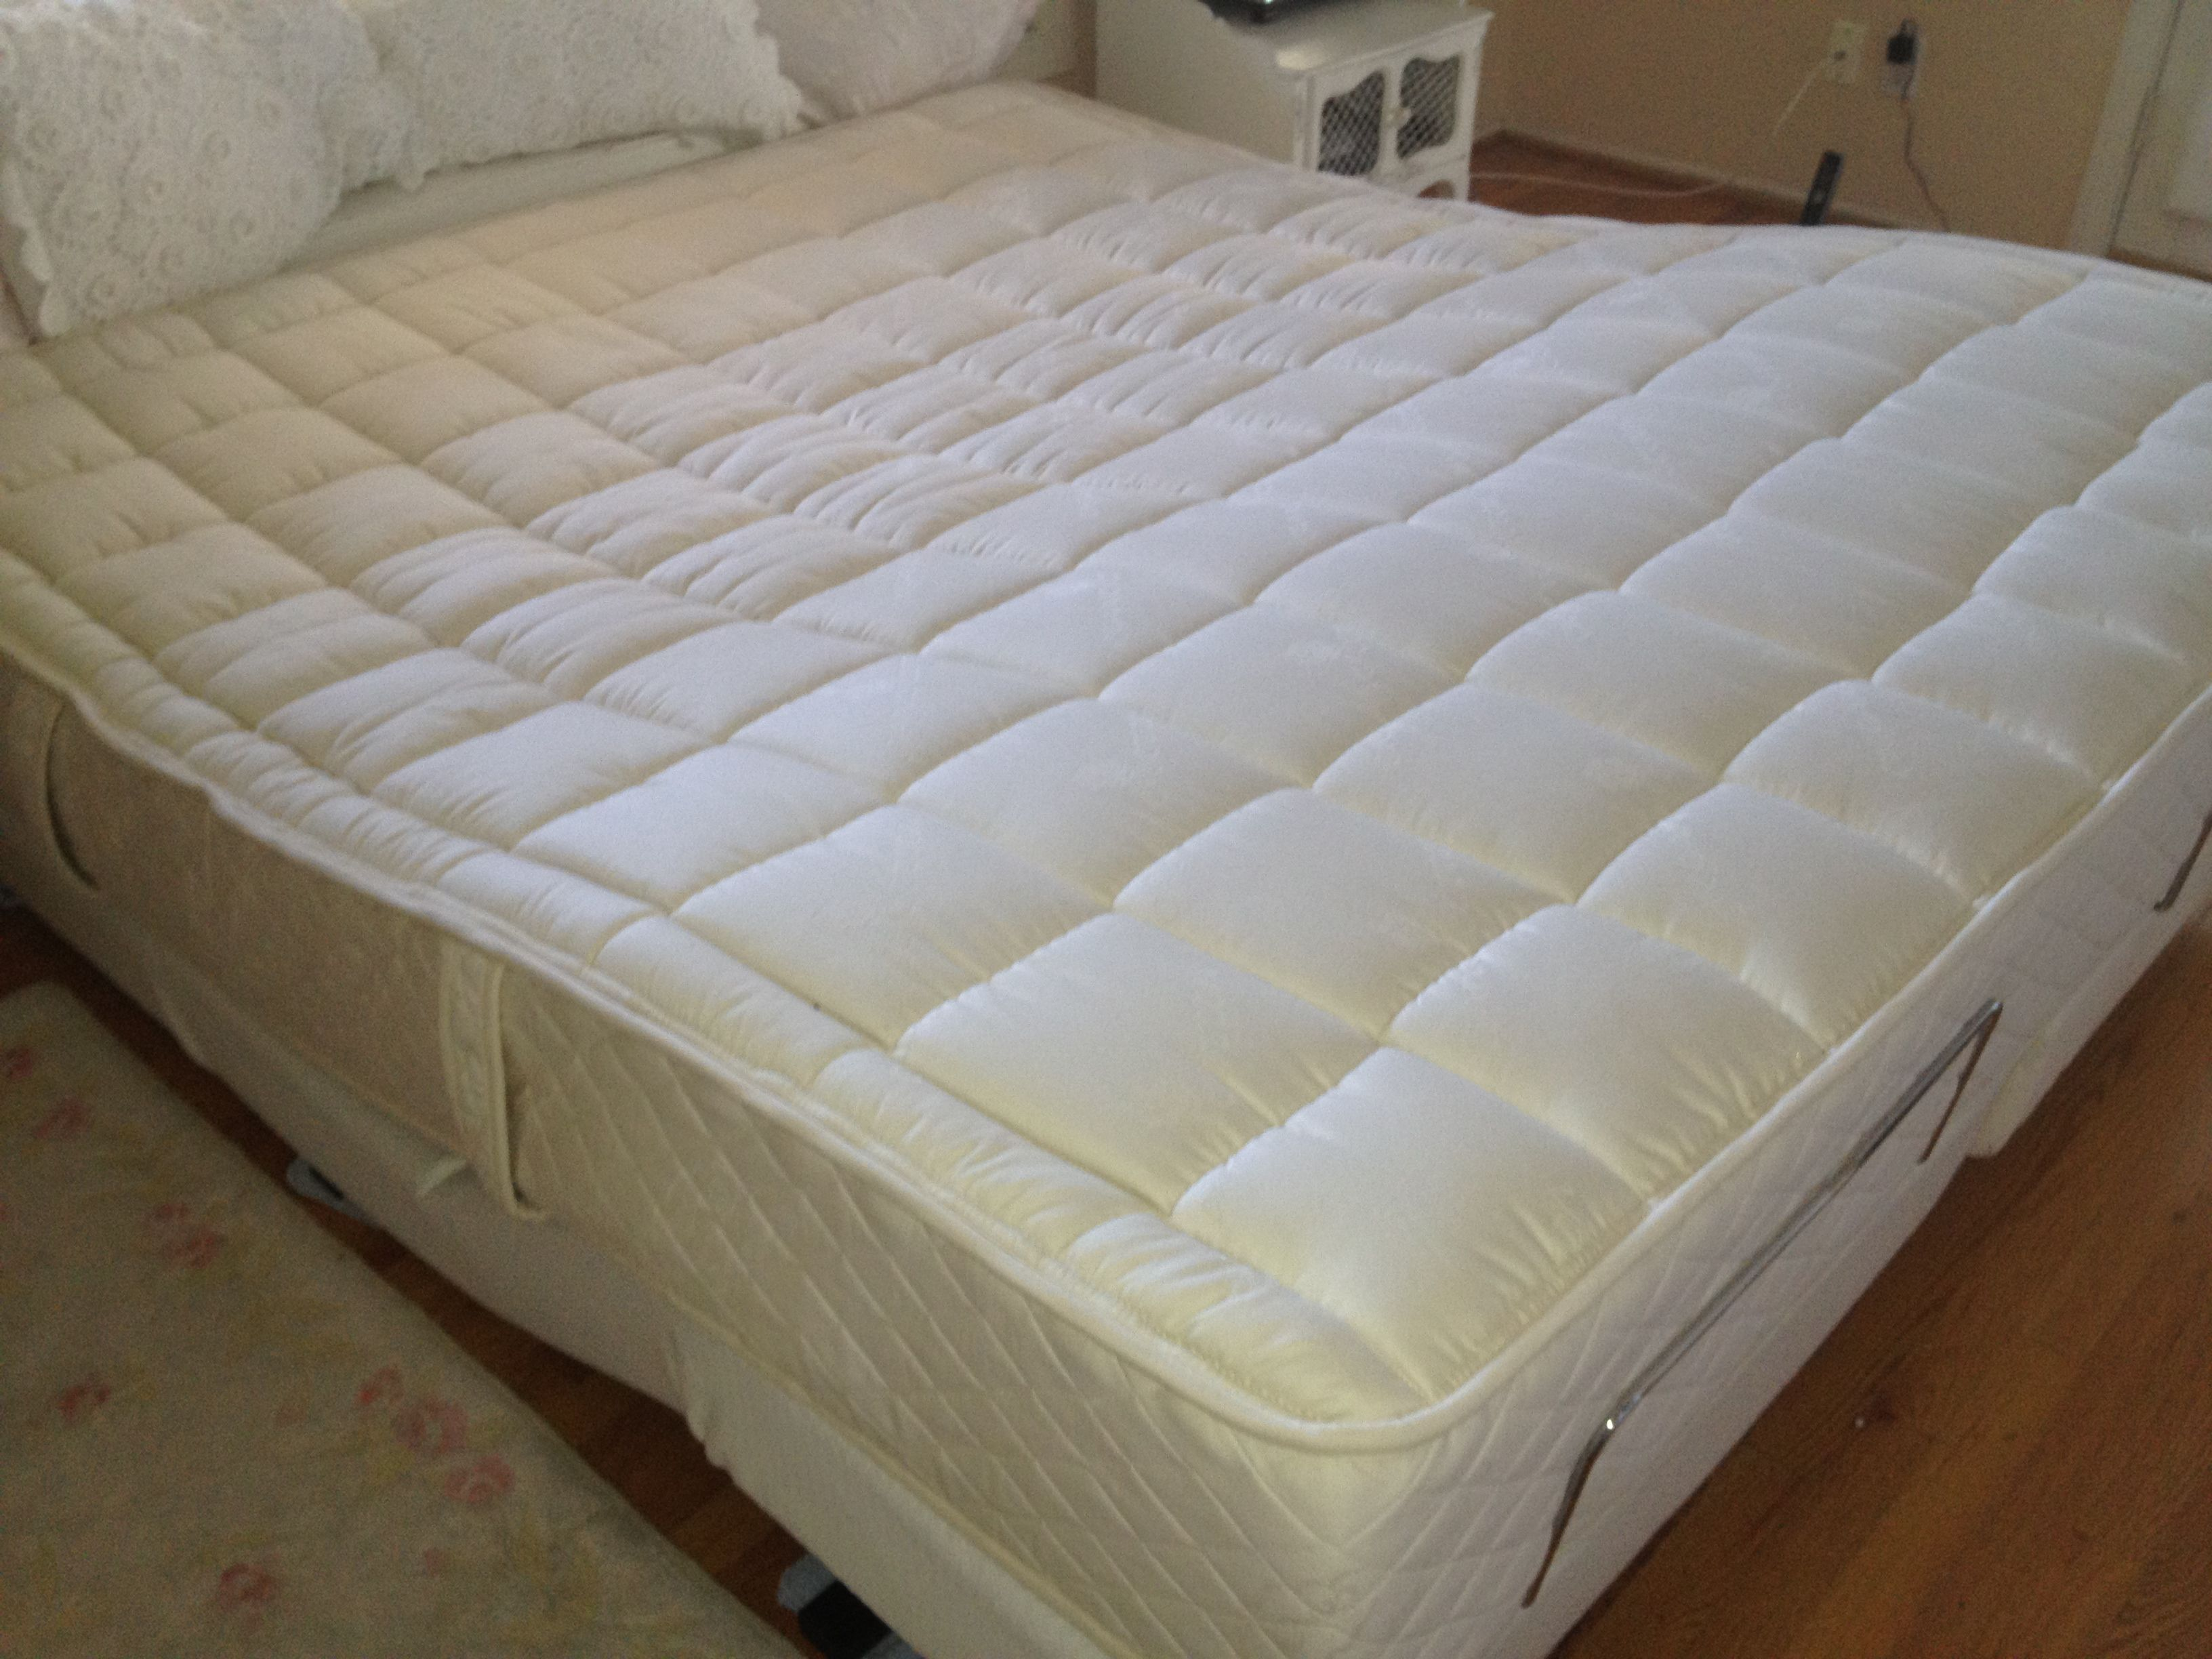 King Size Bed Mattress Cheap Mattress King Mattress Cheap King